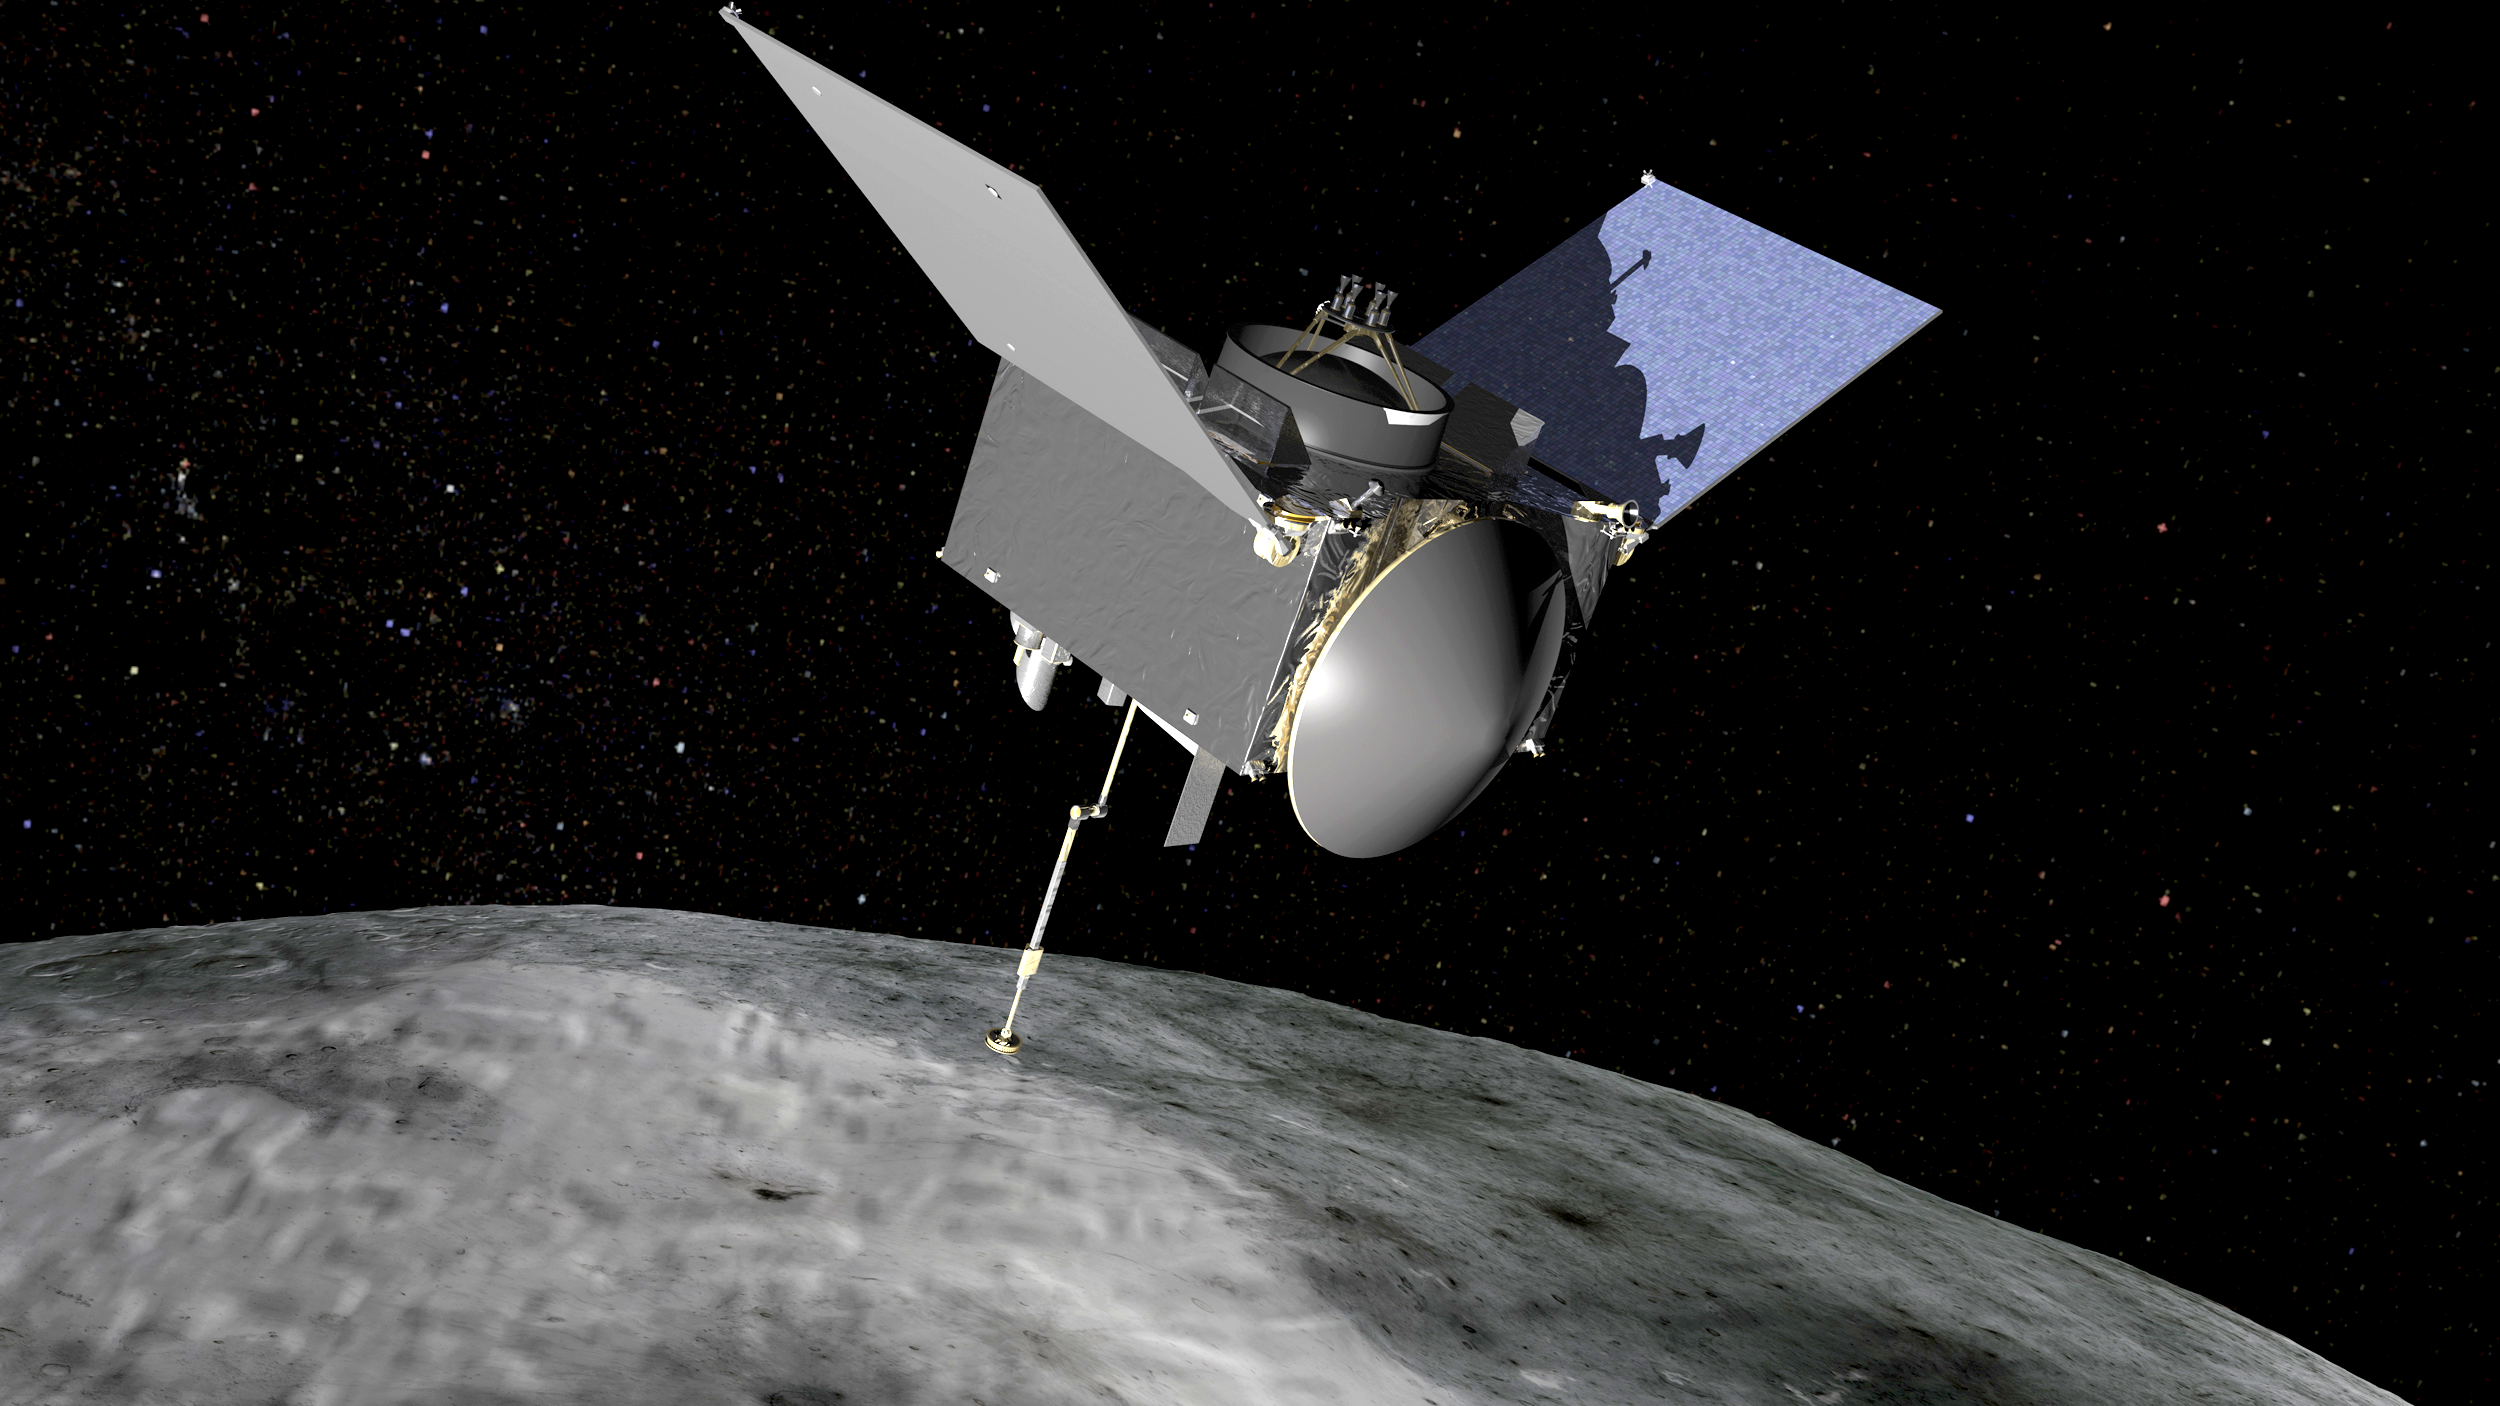 In this rendering, OSIRIS-REx extends its sampling arm as it moves in to make contact with the asteroid Bennu. Credit: NASA